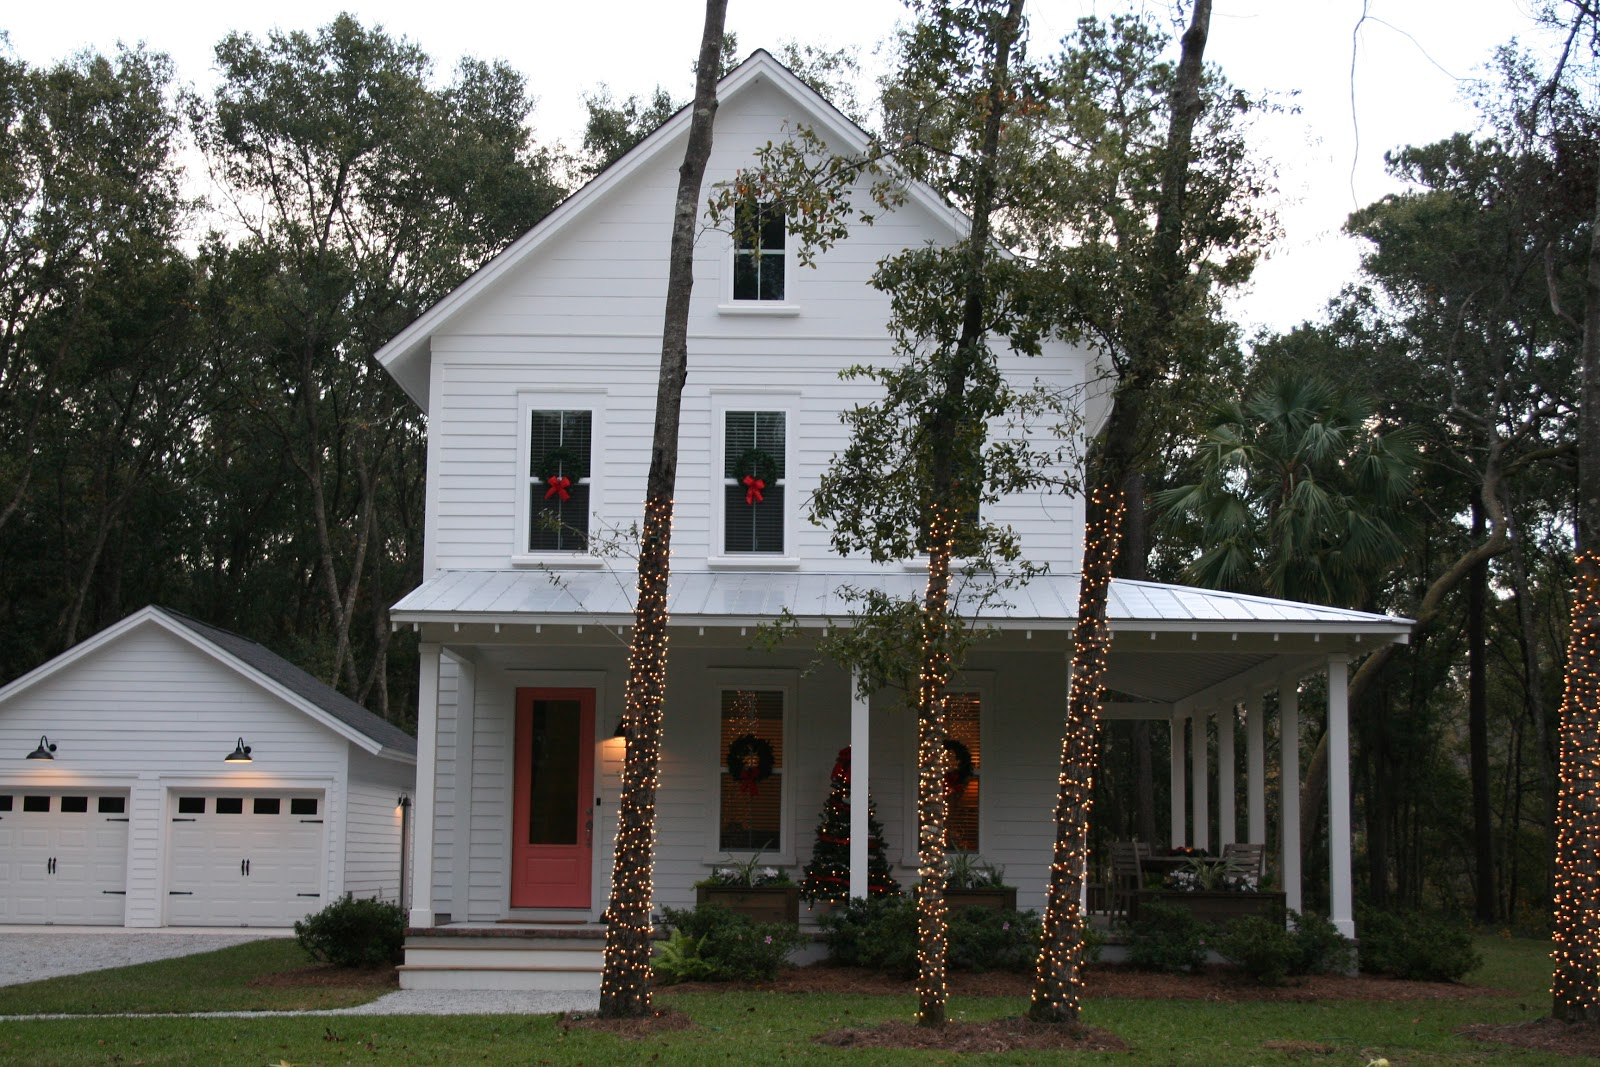 and here is what the house looks like at night simple classic cottage outdoor christmas decorations the lowcountry lady - Outdoor Christmas Decorations 2017